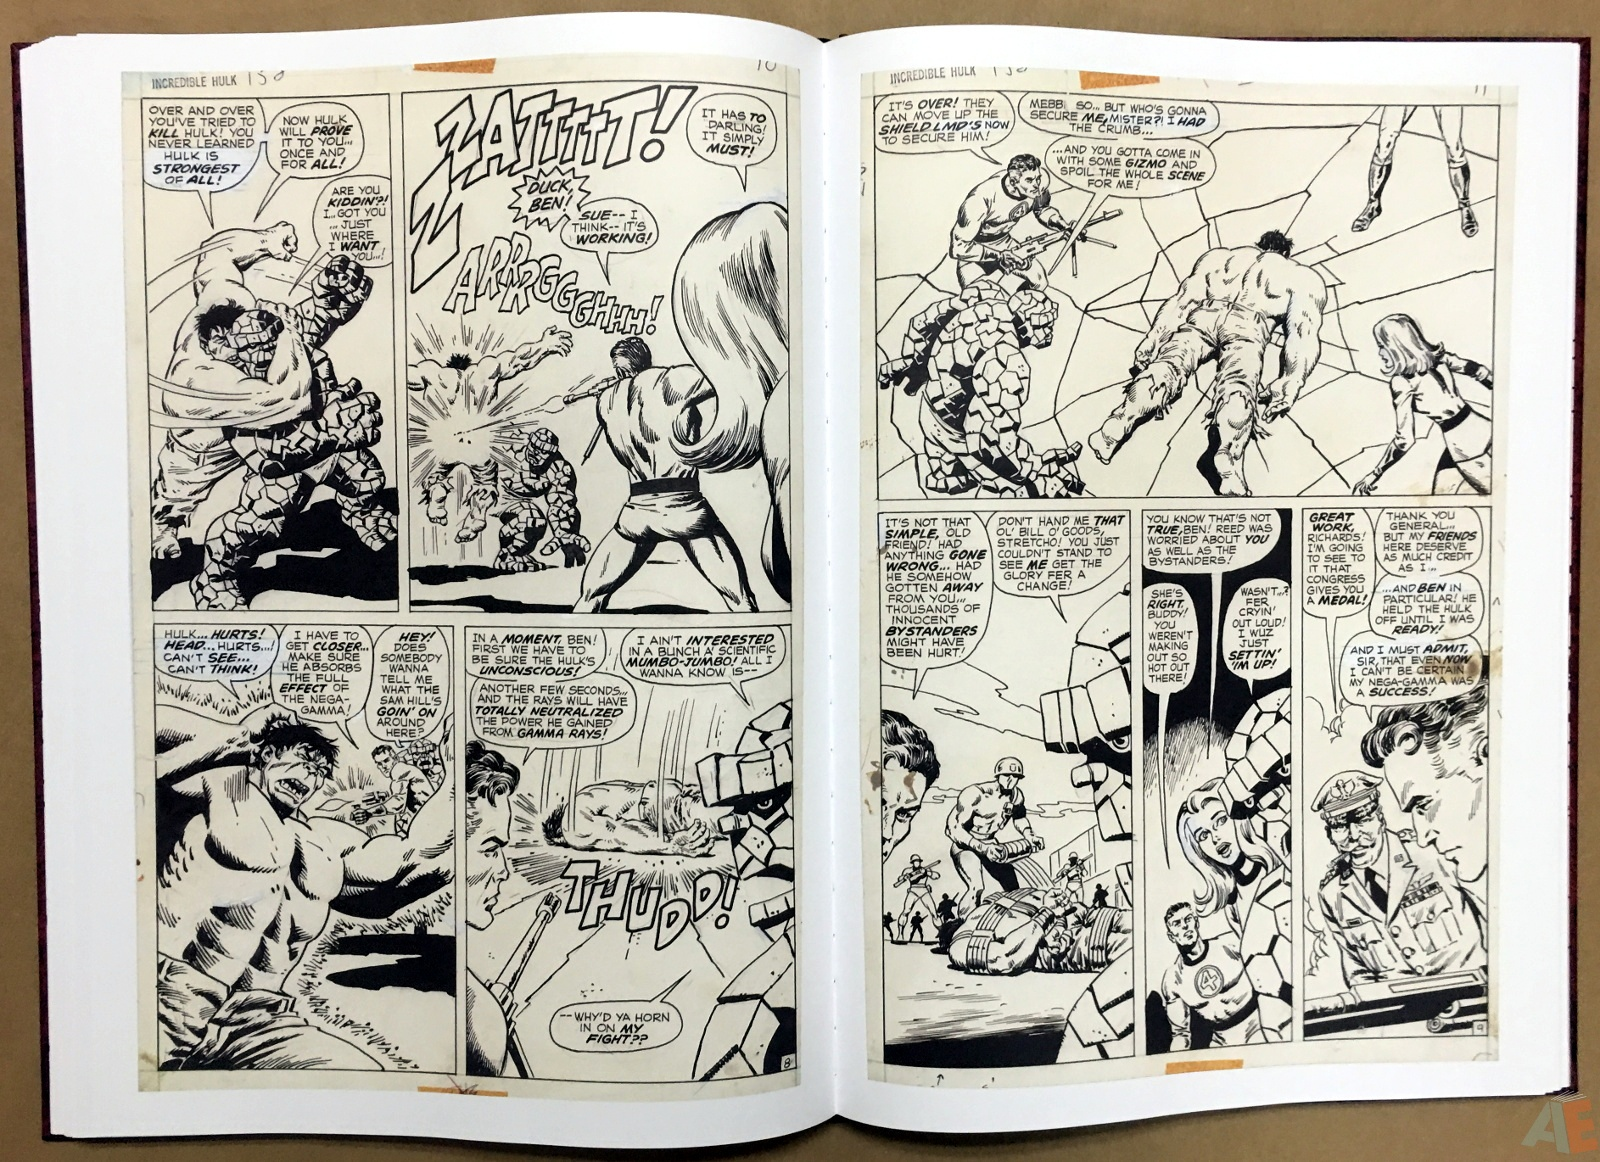 Herb Trimpe's The Incredible Hulk Artist's Edition 30